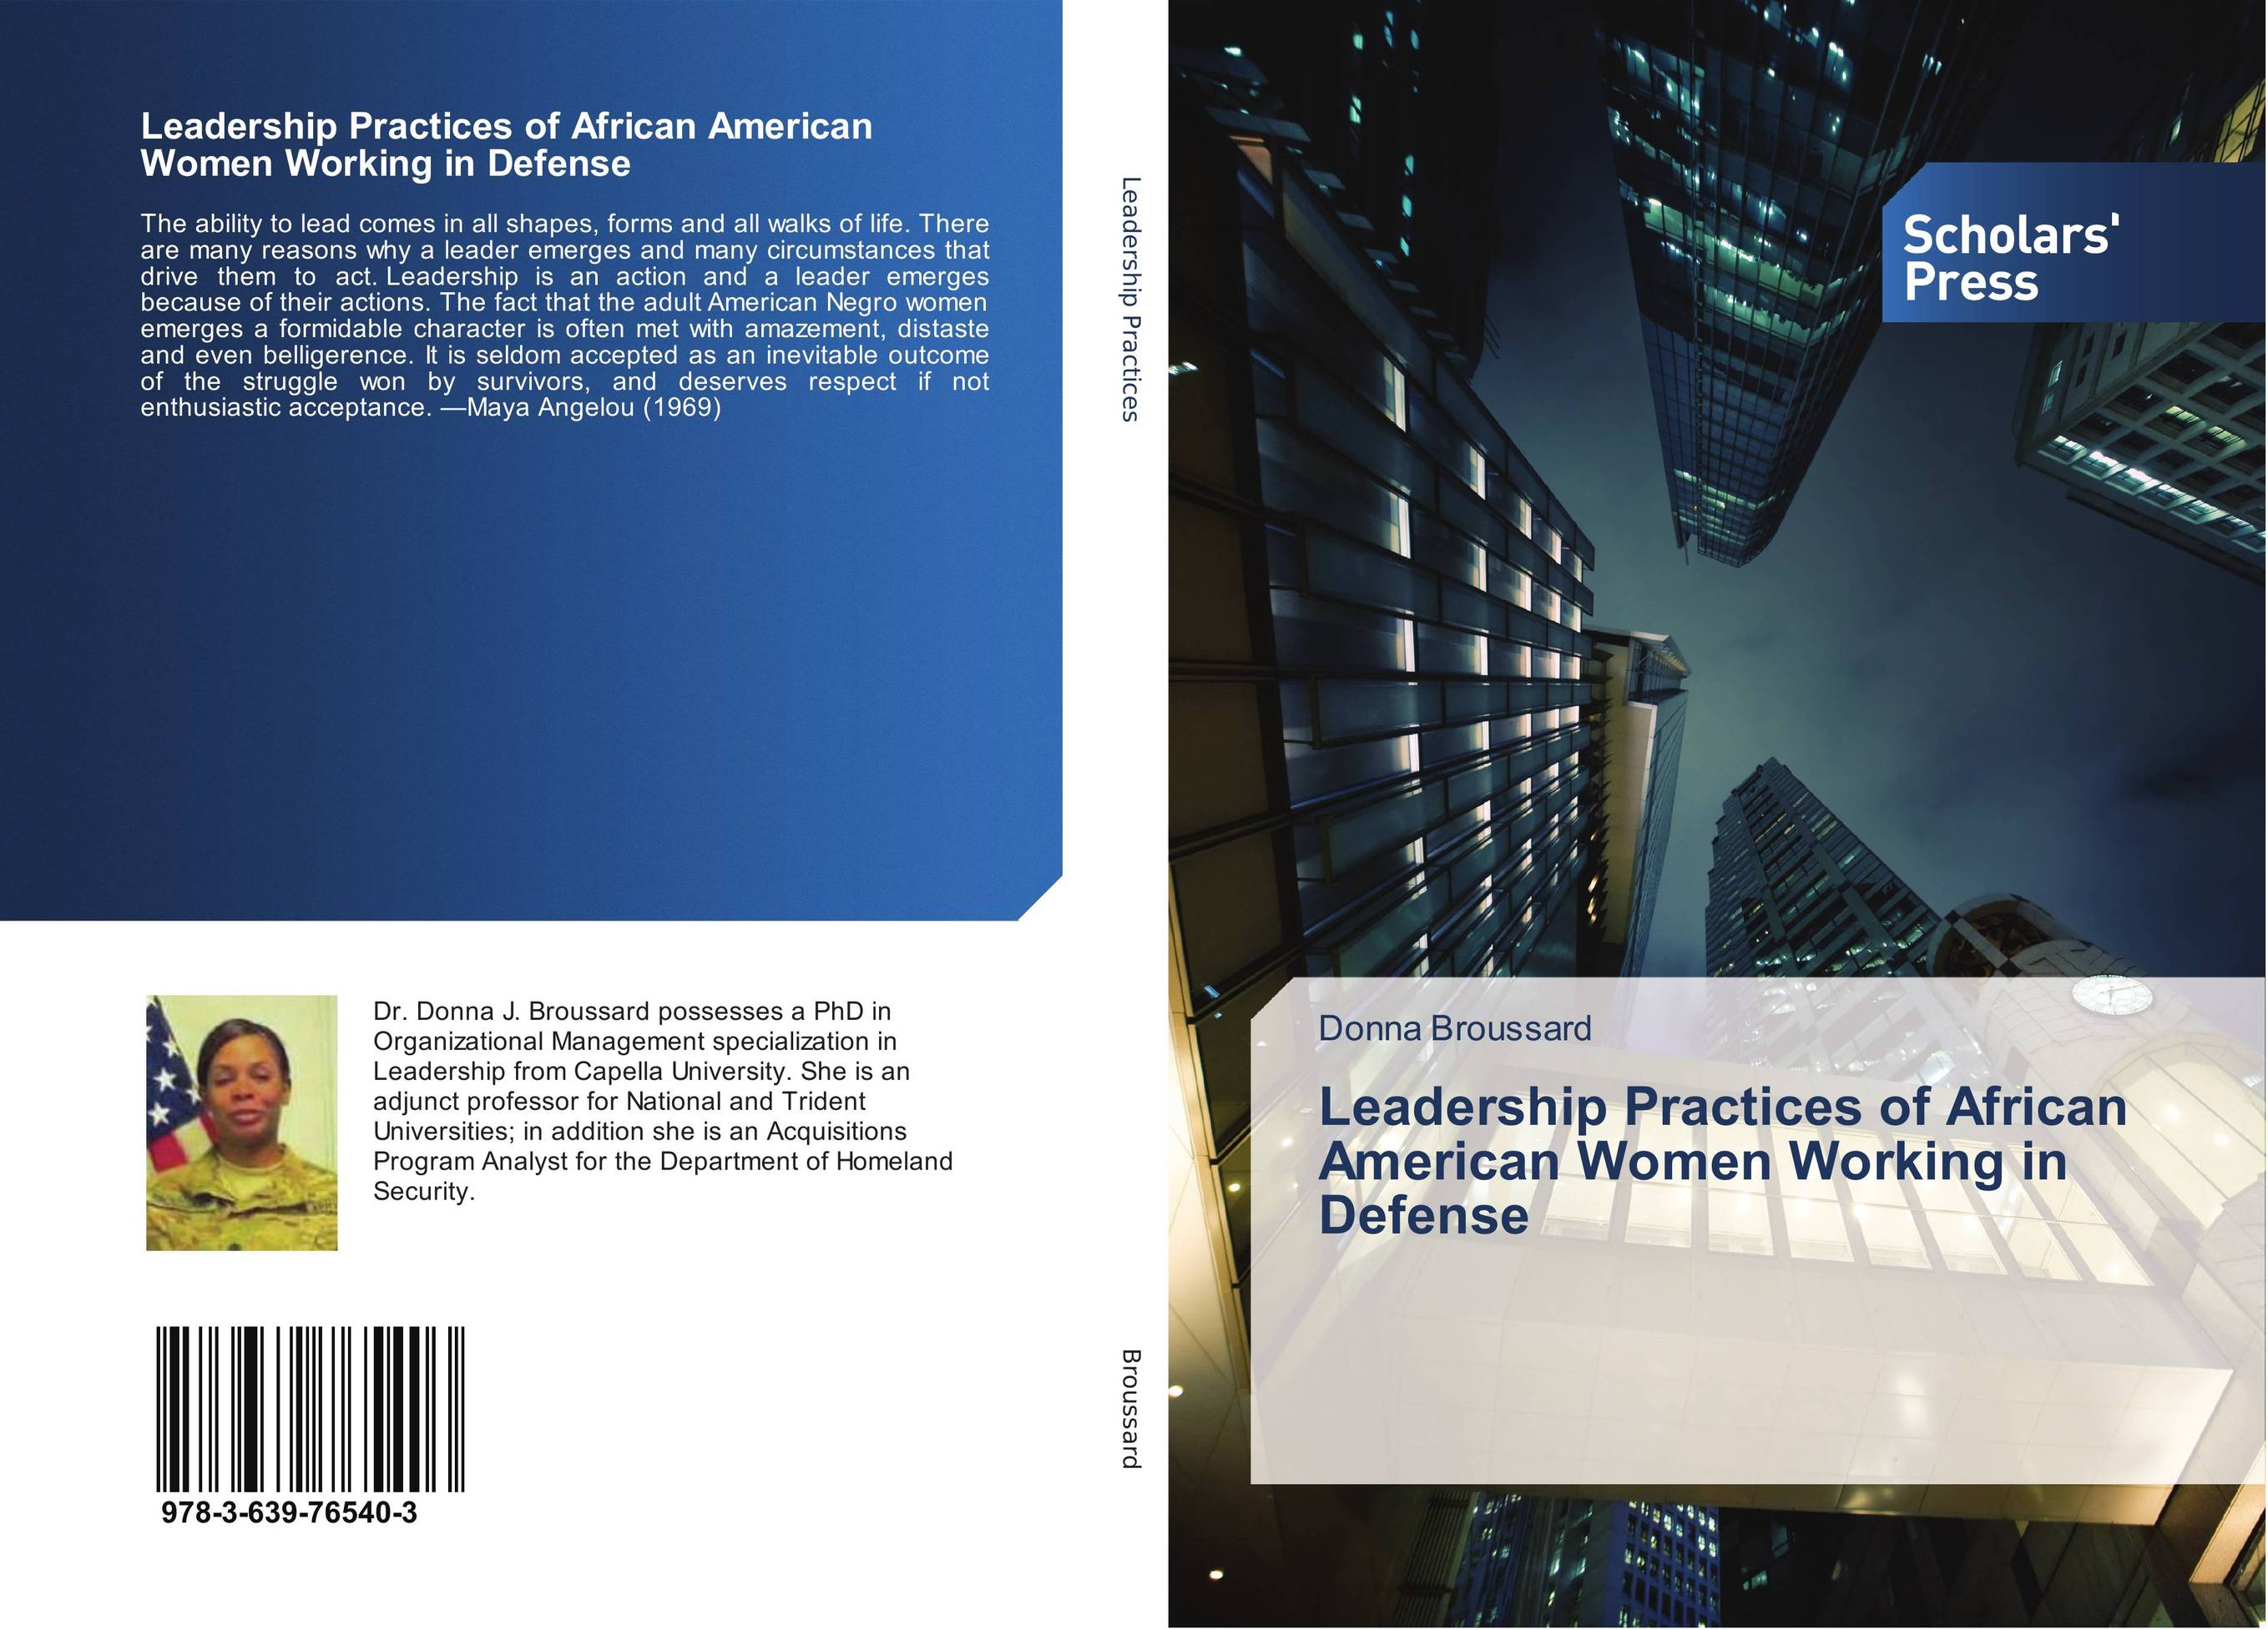 Leadership Practices of African American Women Working in Defense not working